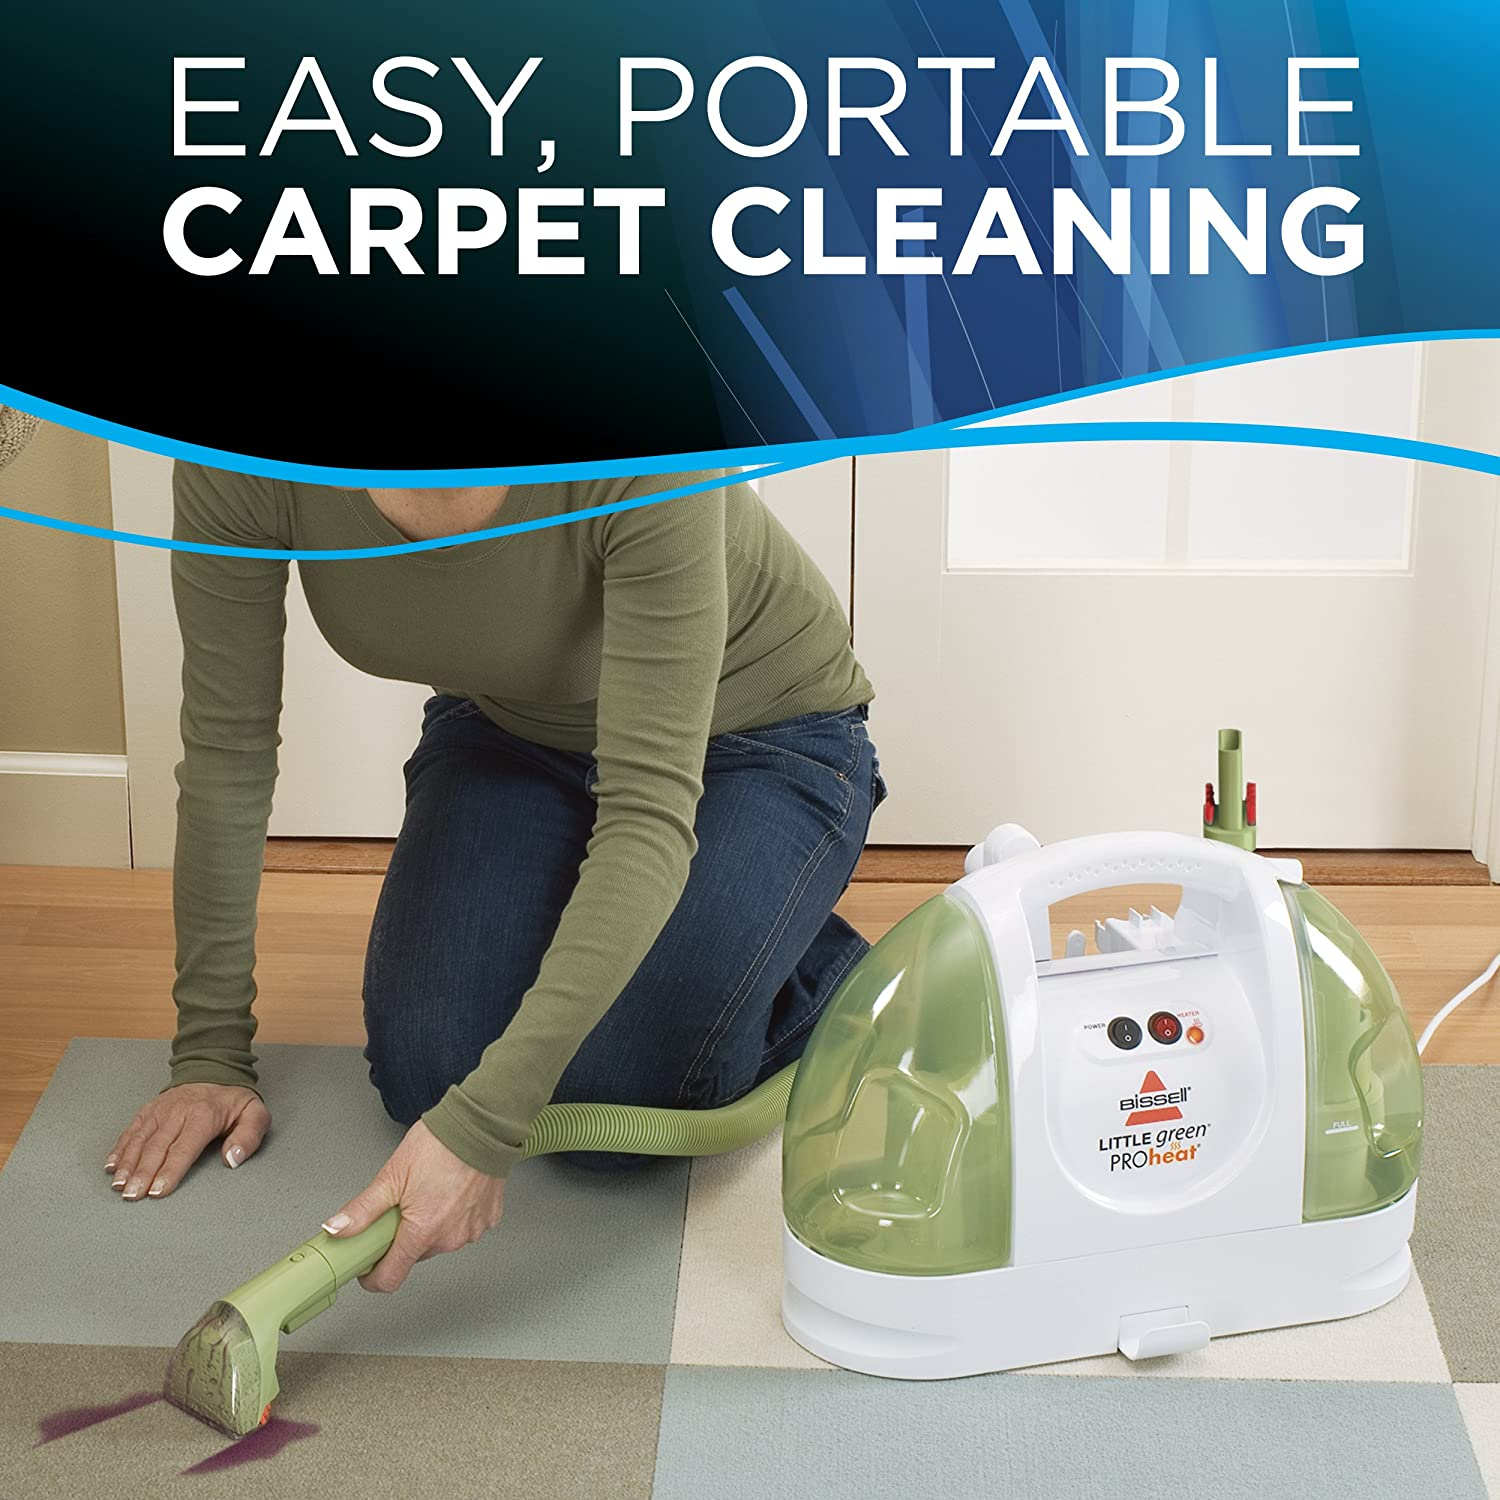 Amazon BISSELL Little Green ProHeat Portable Carpet and